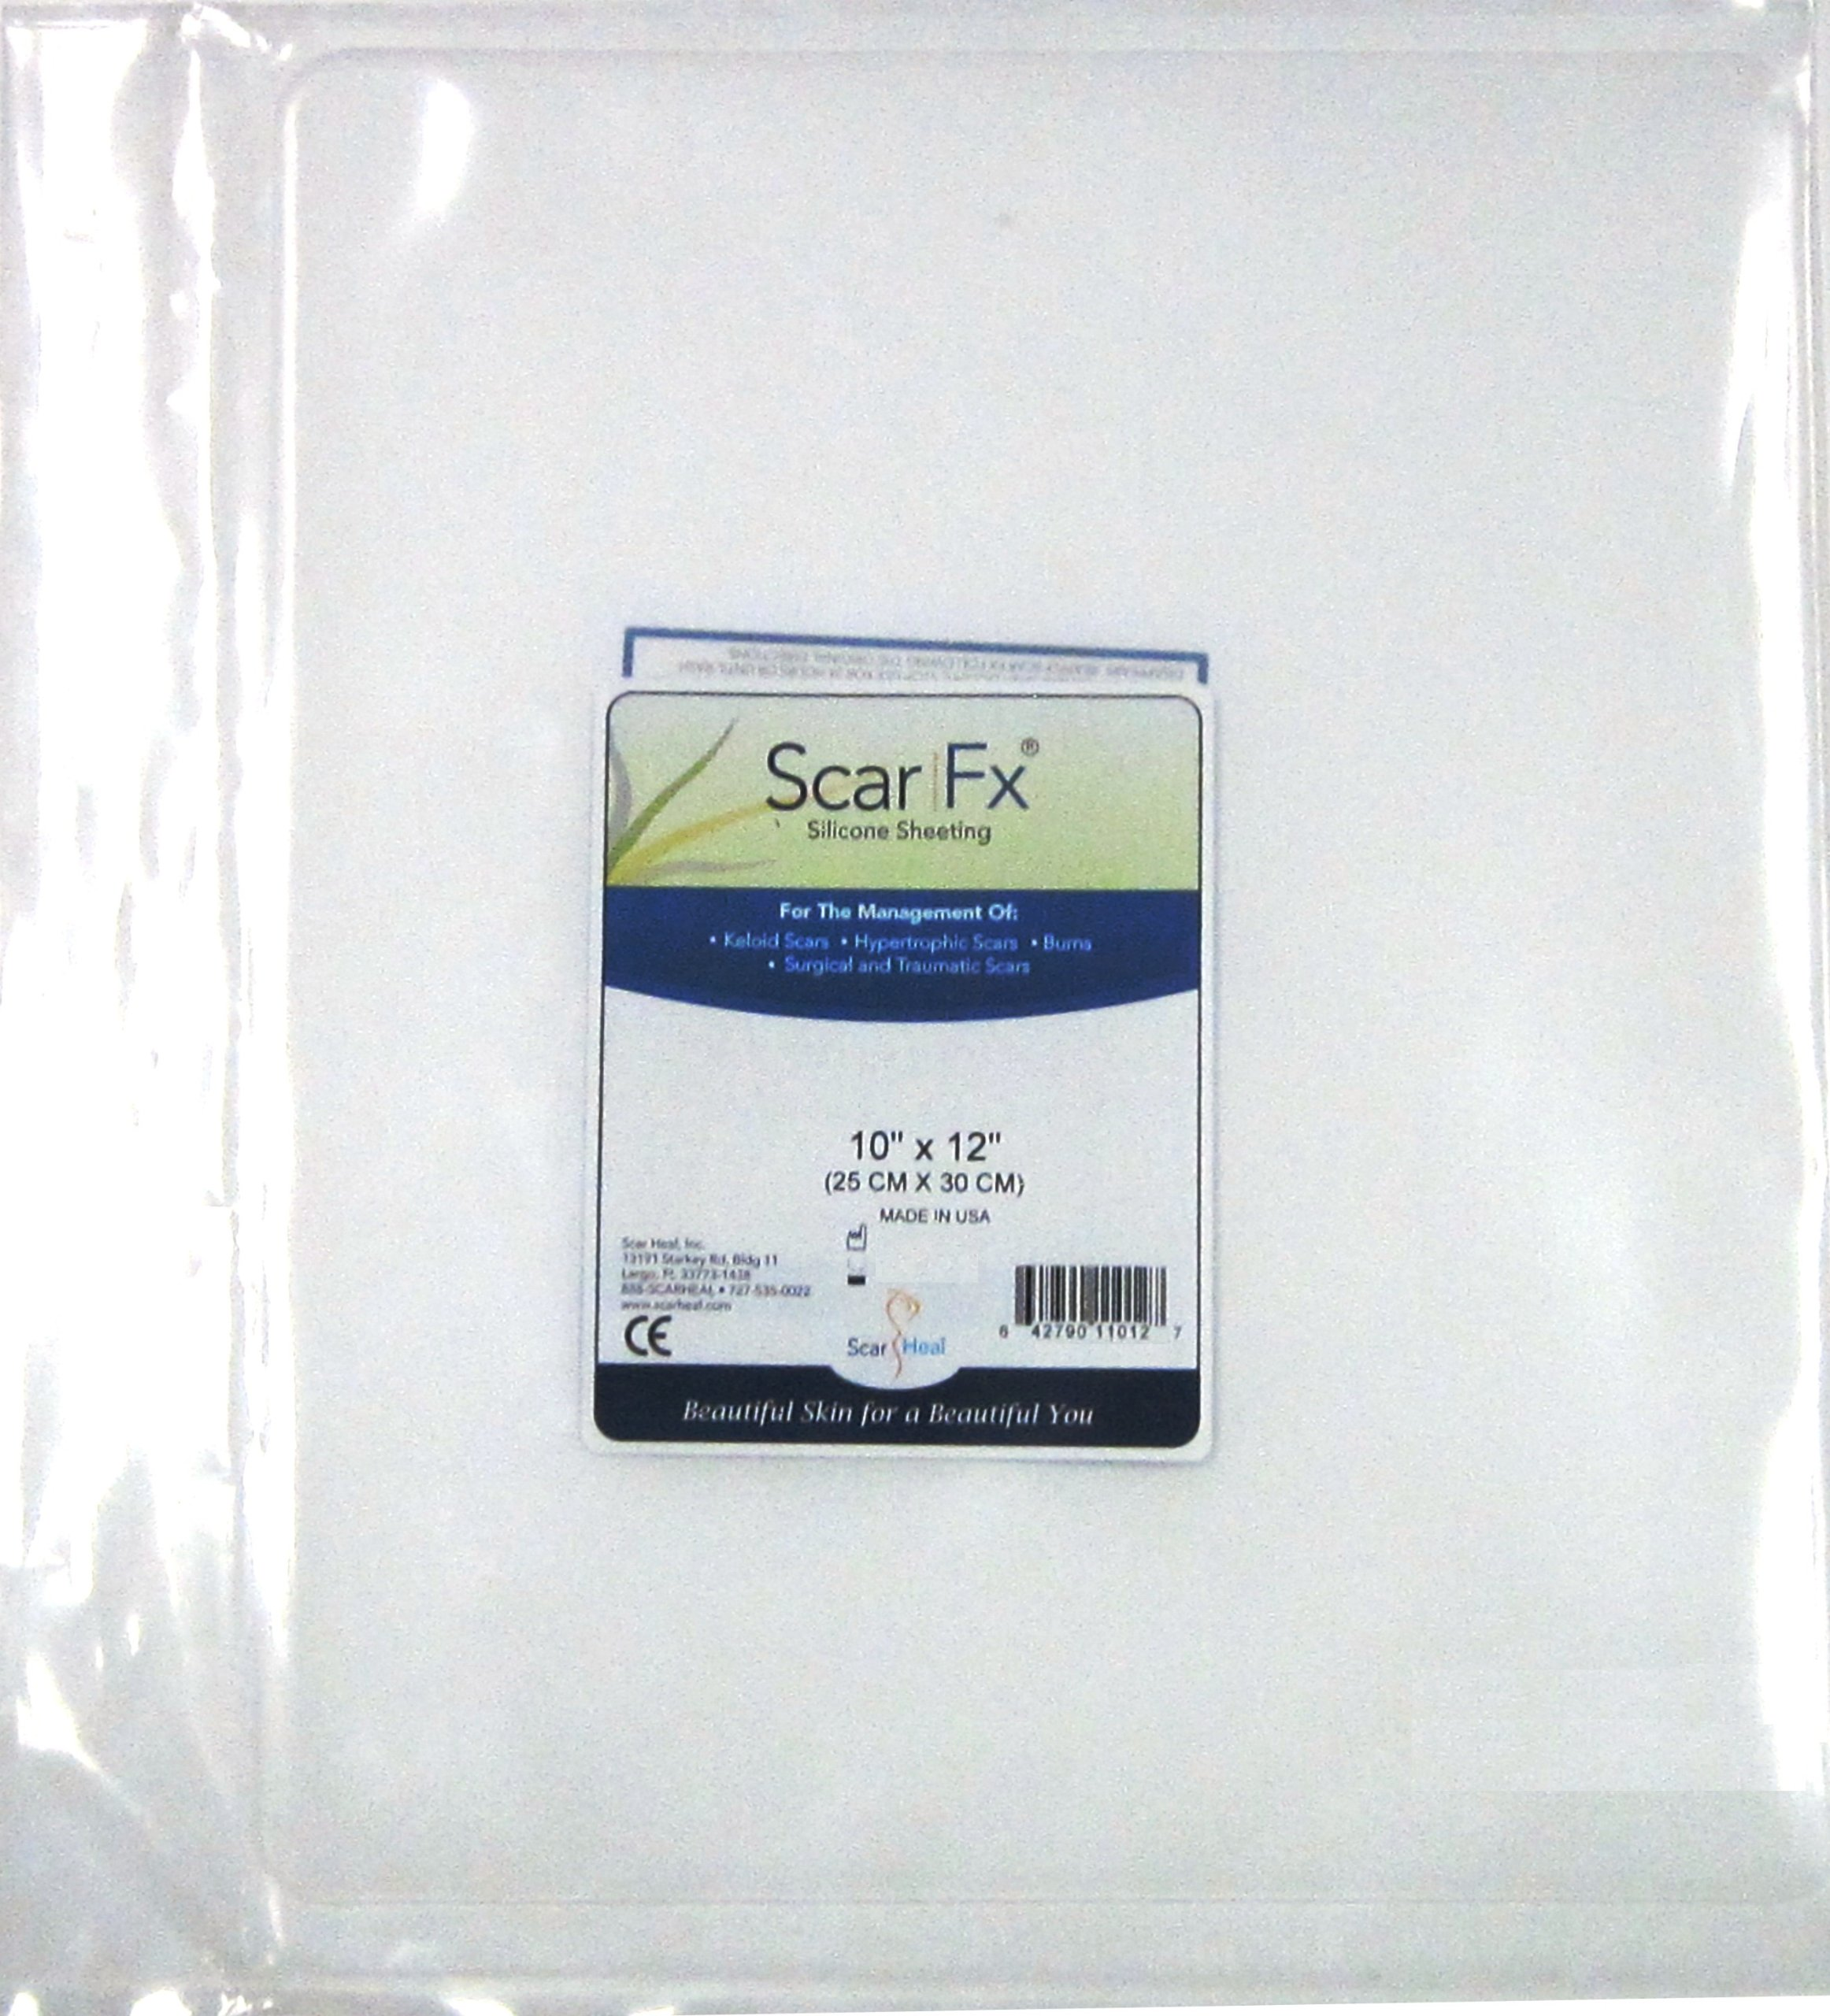 Scar Fx Silicone Scar Therapy, Size Of Patch 10'' X 12'', 1 Patch